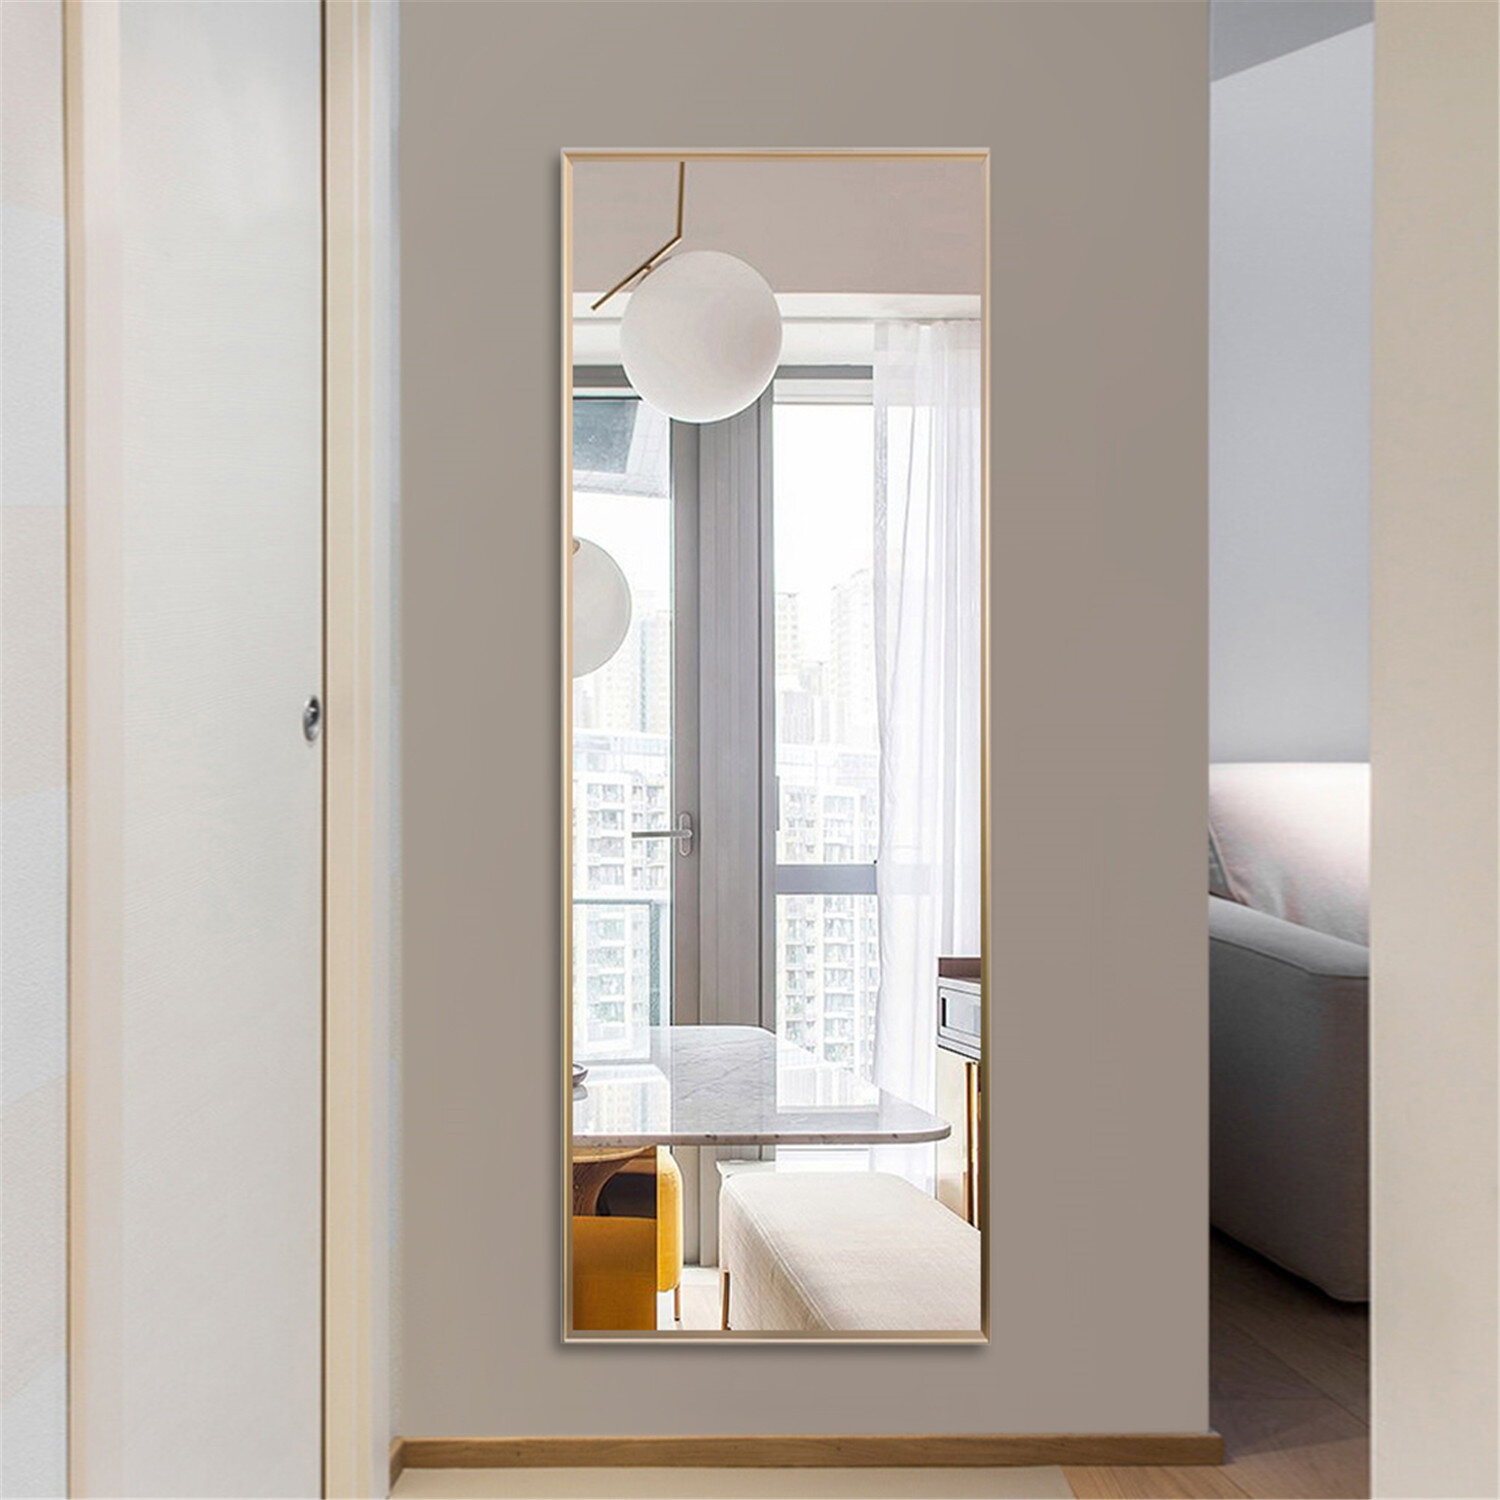 Gold Full Length Mirrors Free Shipping Over 35 Wayfair